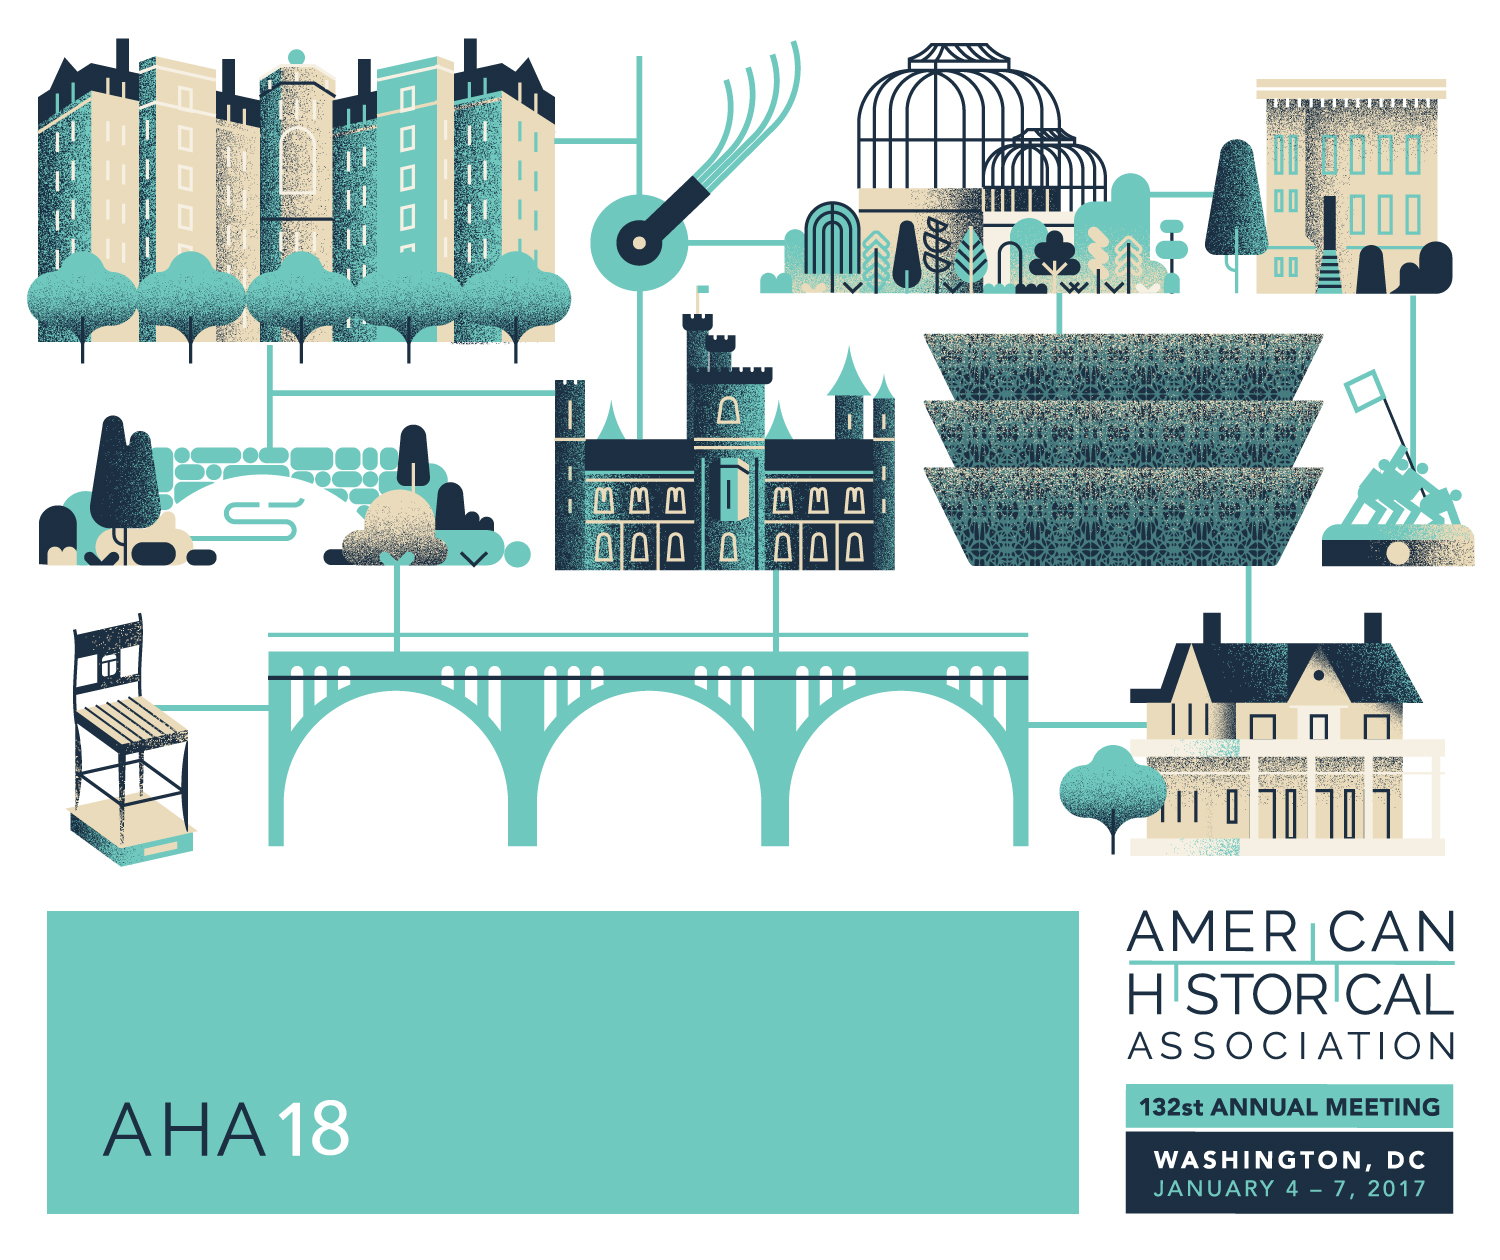 Illustration for Ad Campaign and Conference  Agency:  Eighty2Degrees  | Client: American Historical Association